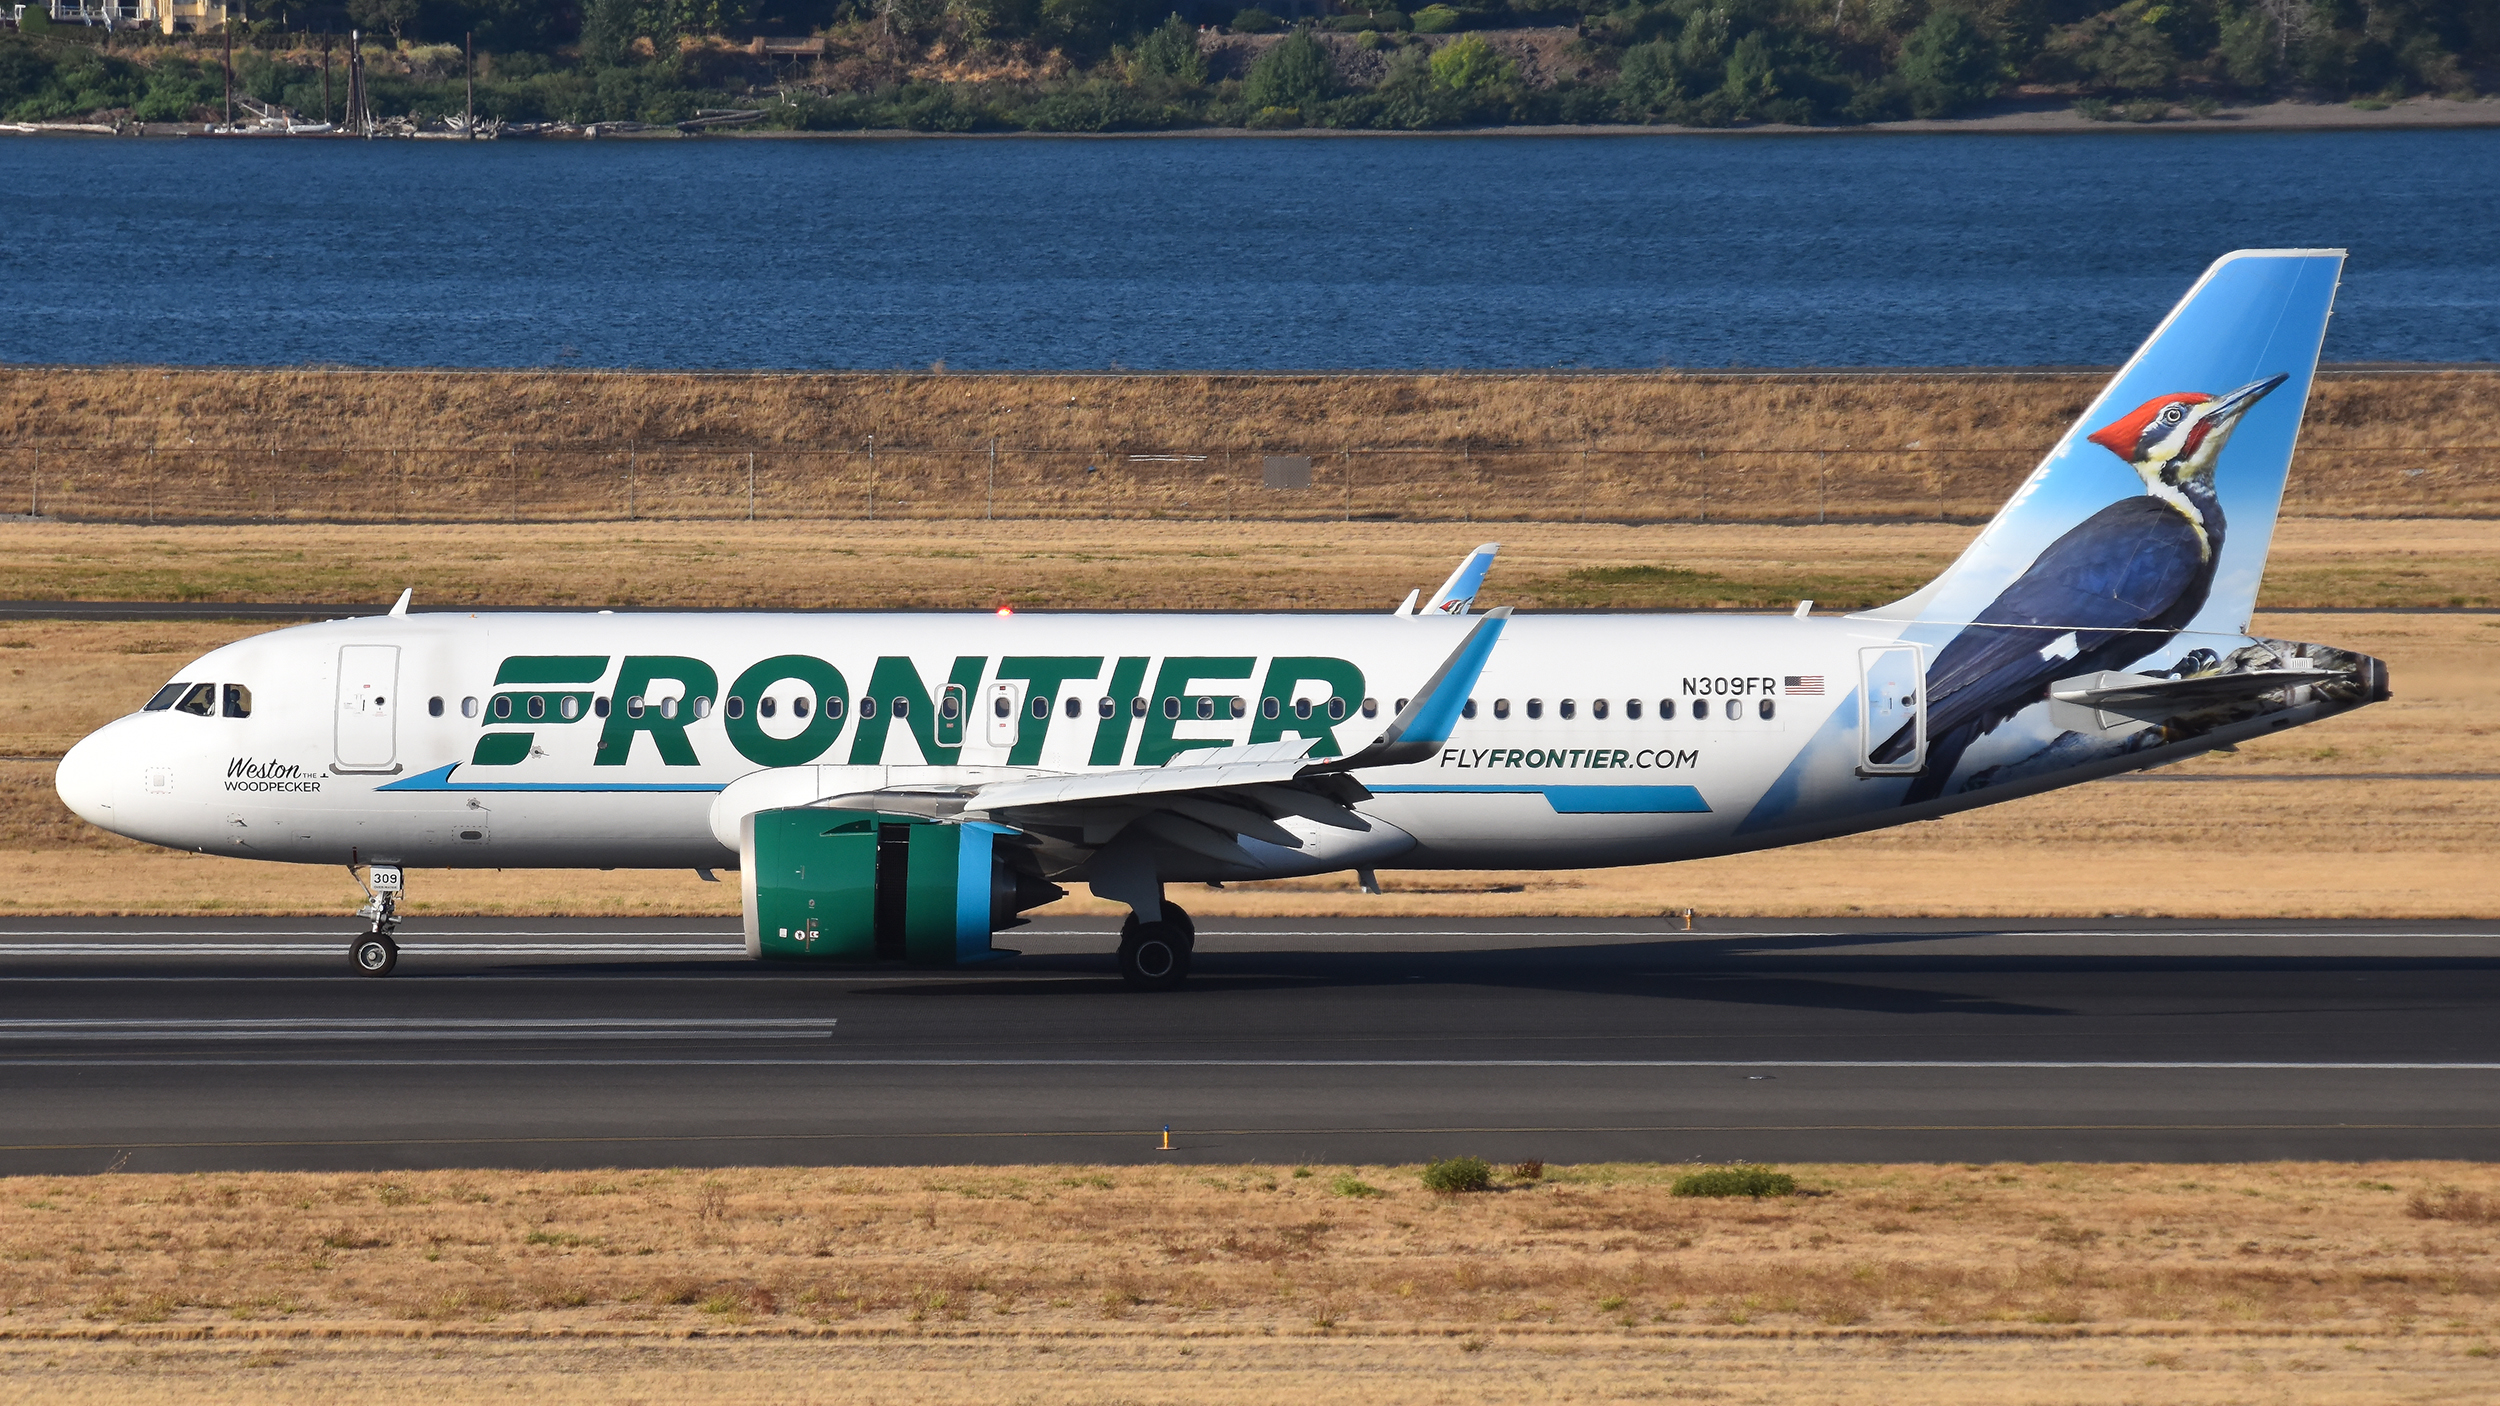 Photo of N309FR - Frontier Airlines Airbus A320NEO at PDX